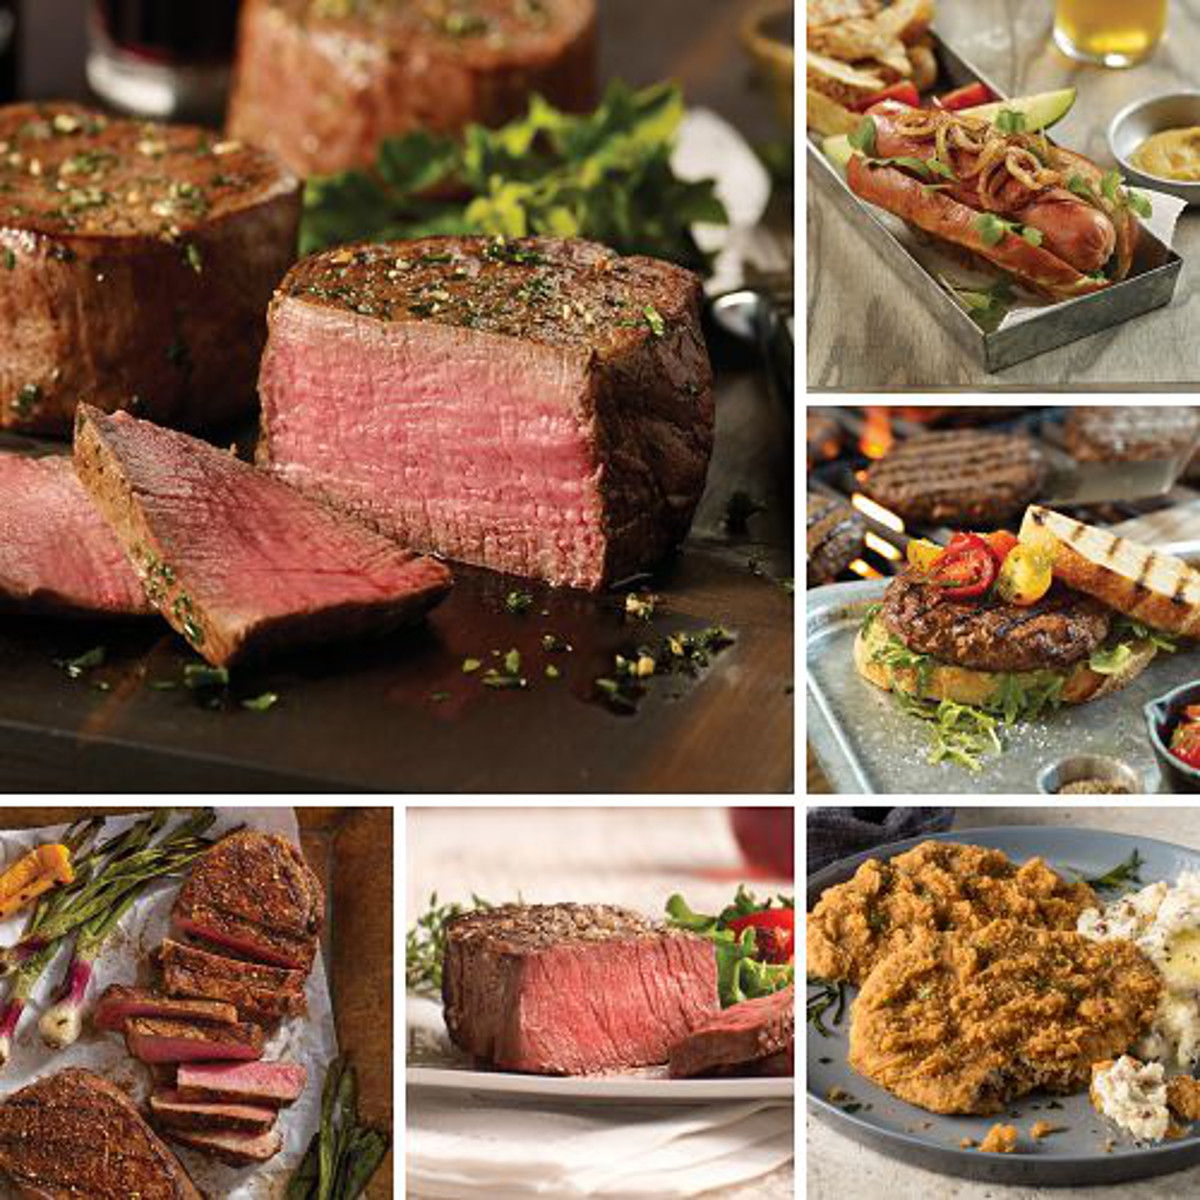 Omaha Steaks Holiday Gift Sampler Father's Day Food Christmas Gift Package Gourmet Deluxe Steak Gift